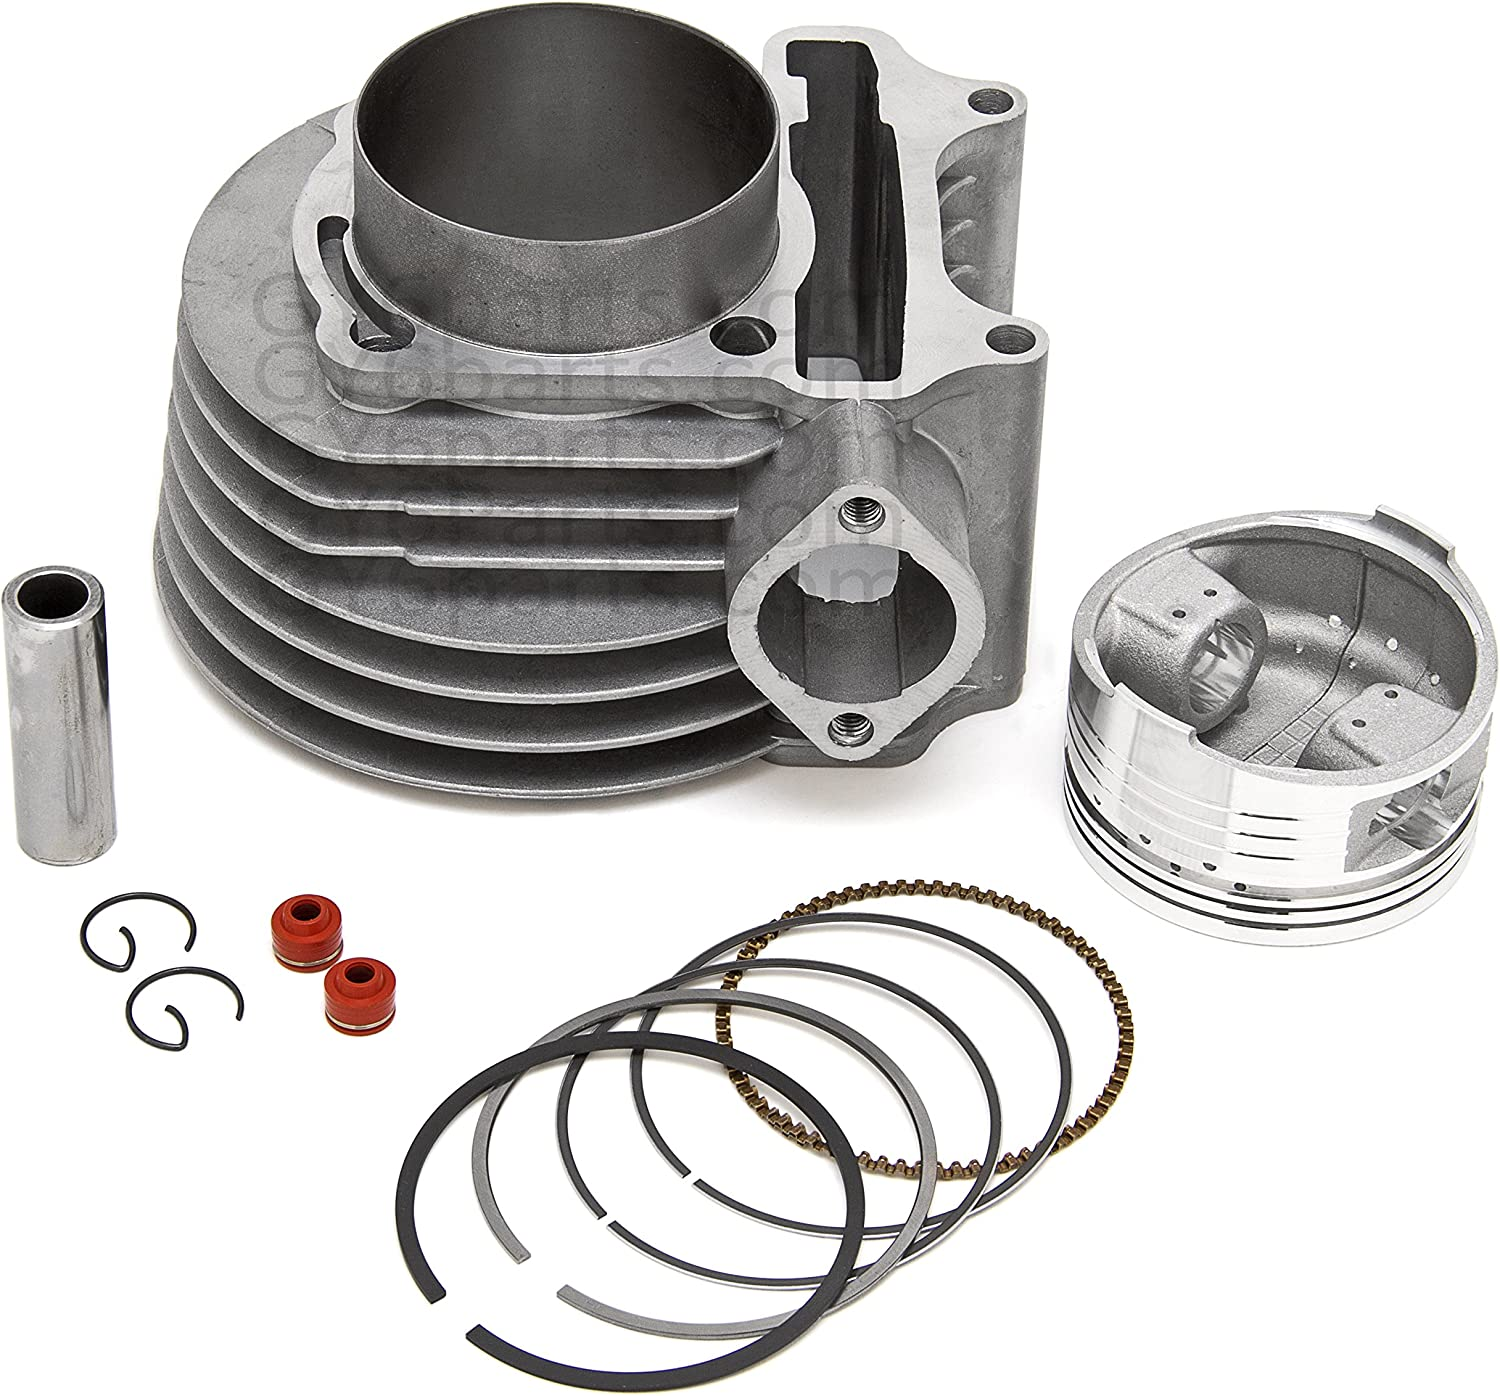 GY6 61mm Big Bore Kit 125cc and 150cc Engines 157QMJ 152QMI READ DETAILS